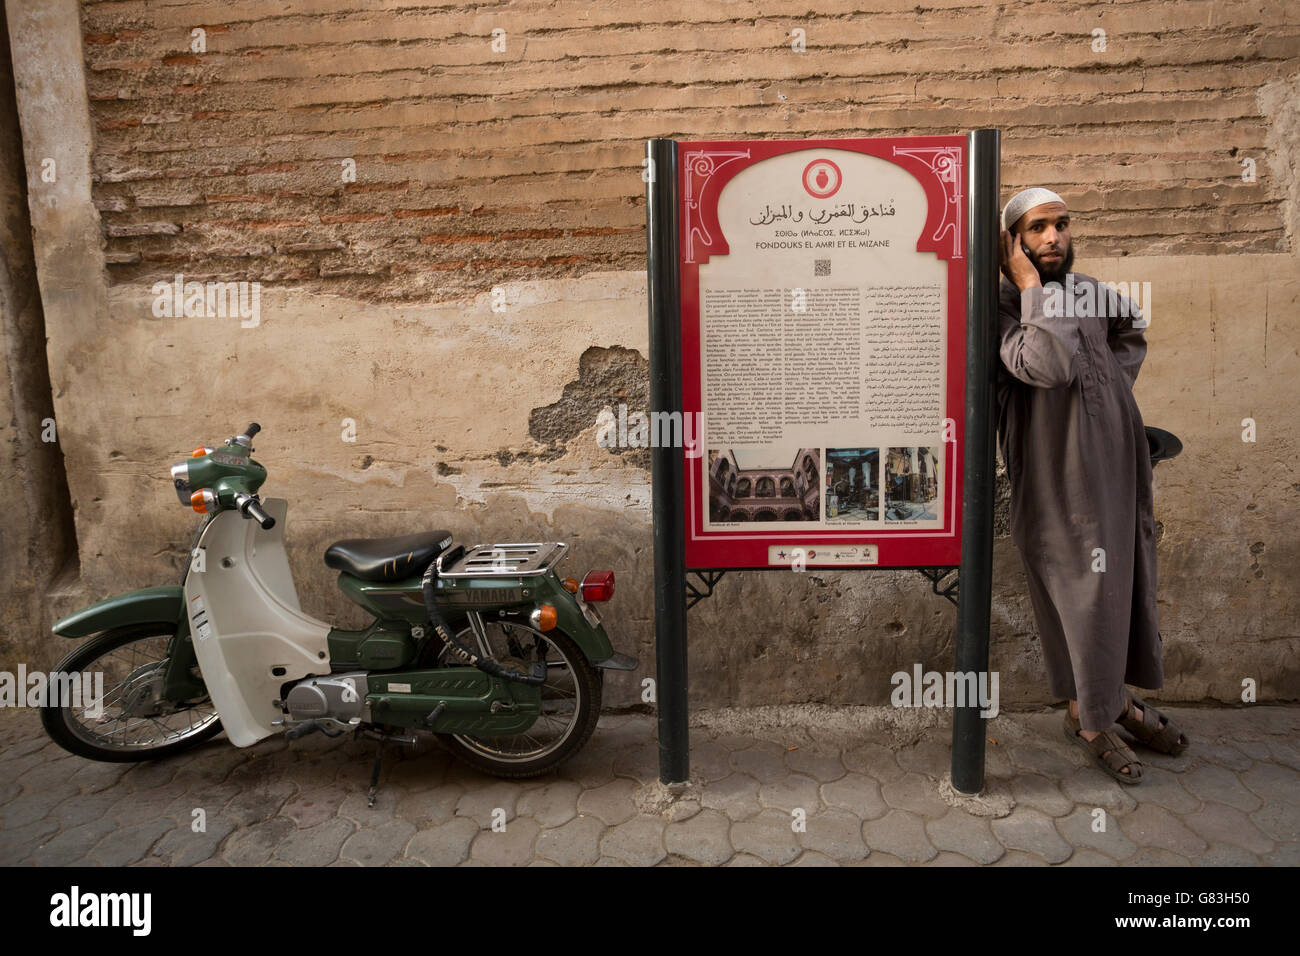 A cultural site marker stands along a narrow street in the Marrakesh Medina, Morocco. - Stock Image